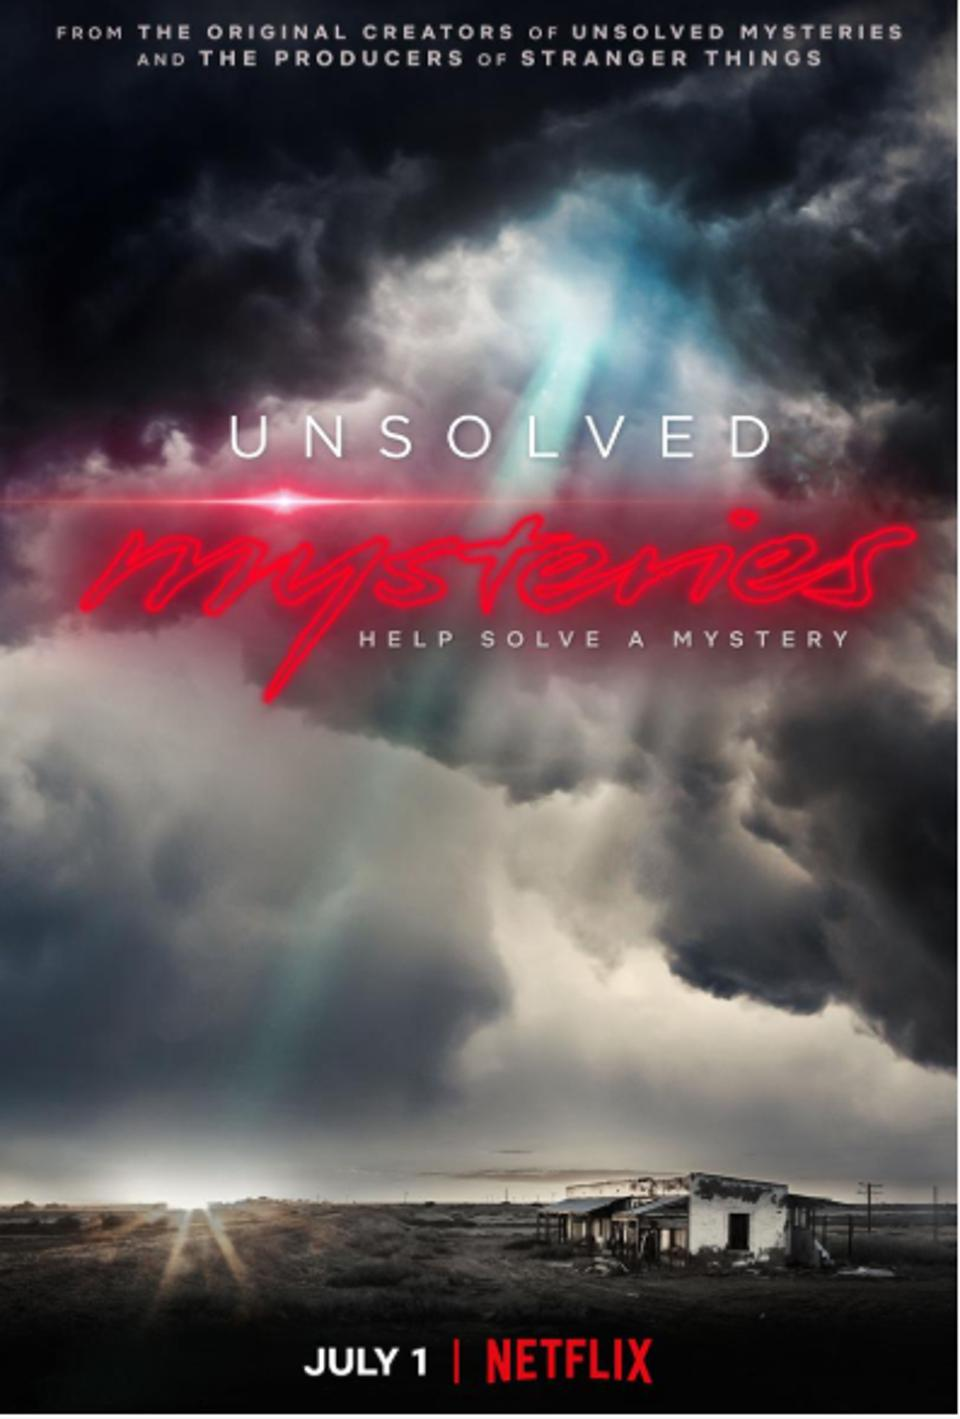 Show Art for Unsolved Mysteries on Netflix